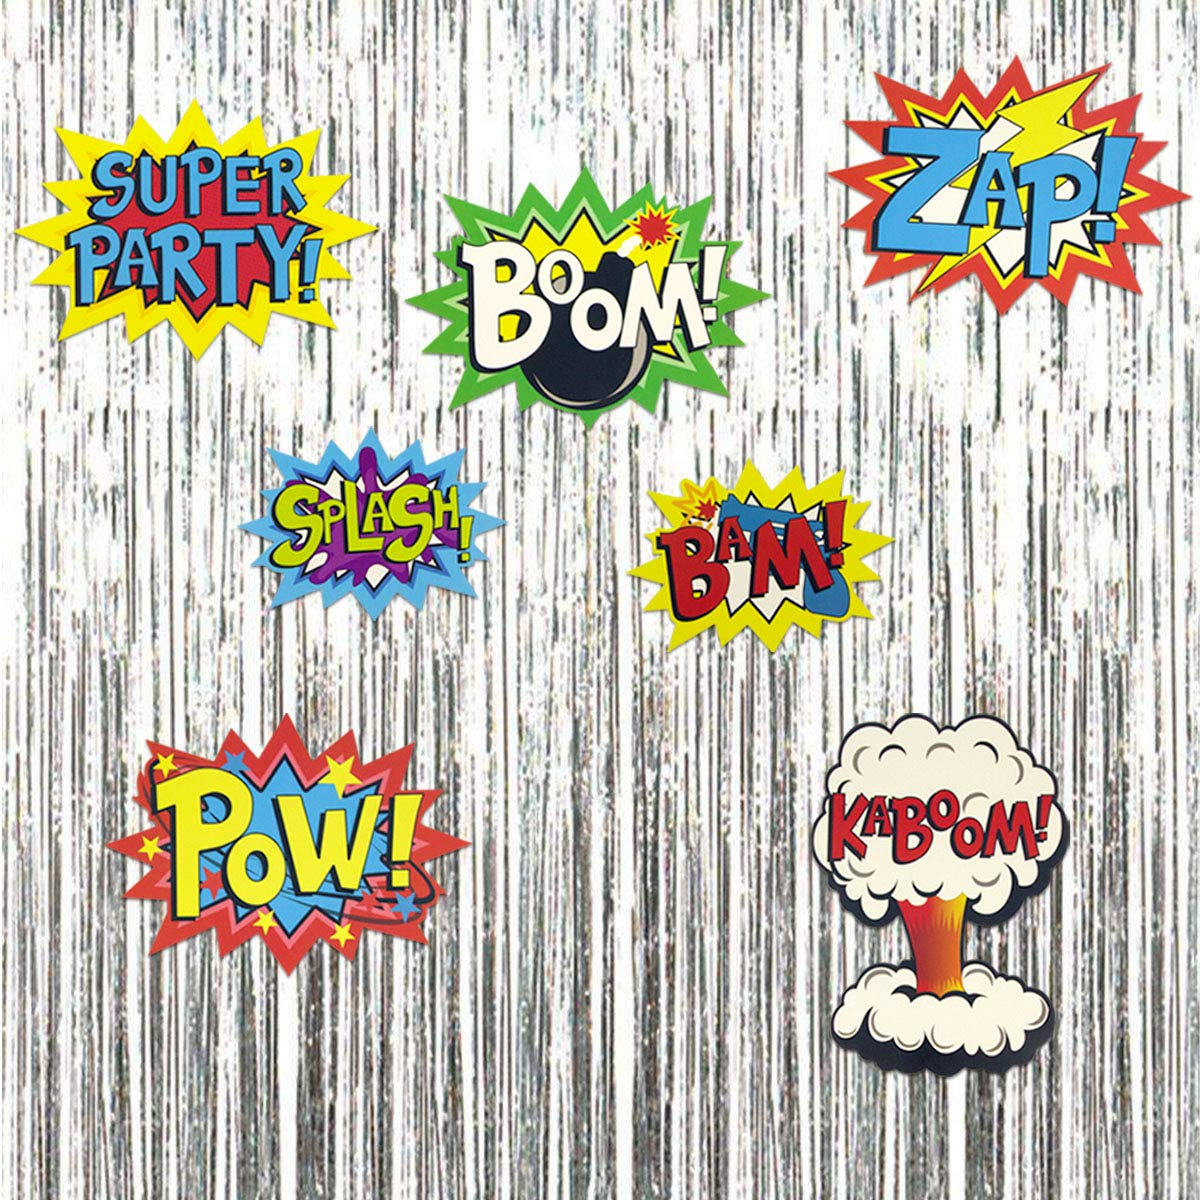 Large Superhero Action Signs Cutouts 12PCS Words and Cityscape Cut-Outs for Party Decoration by Fancy Land (Image #5)